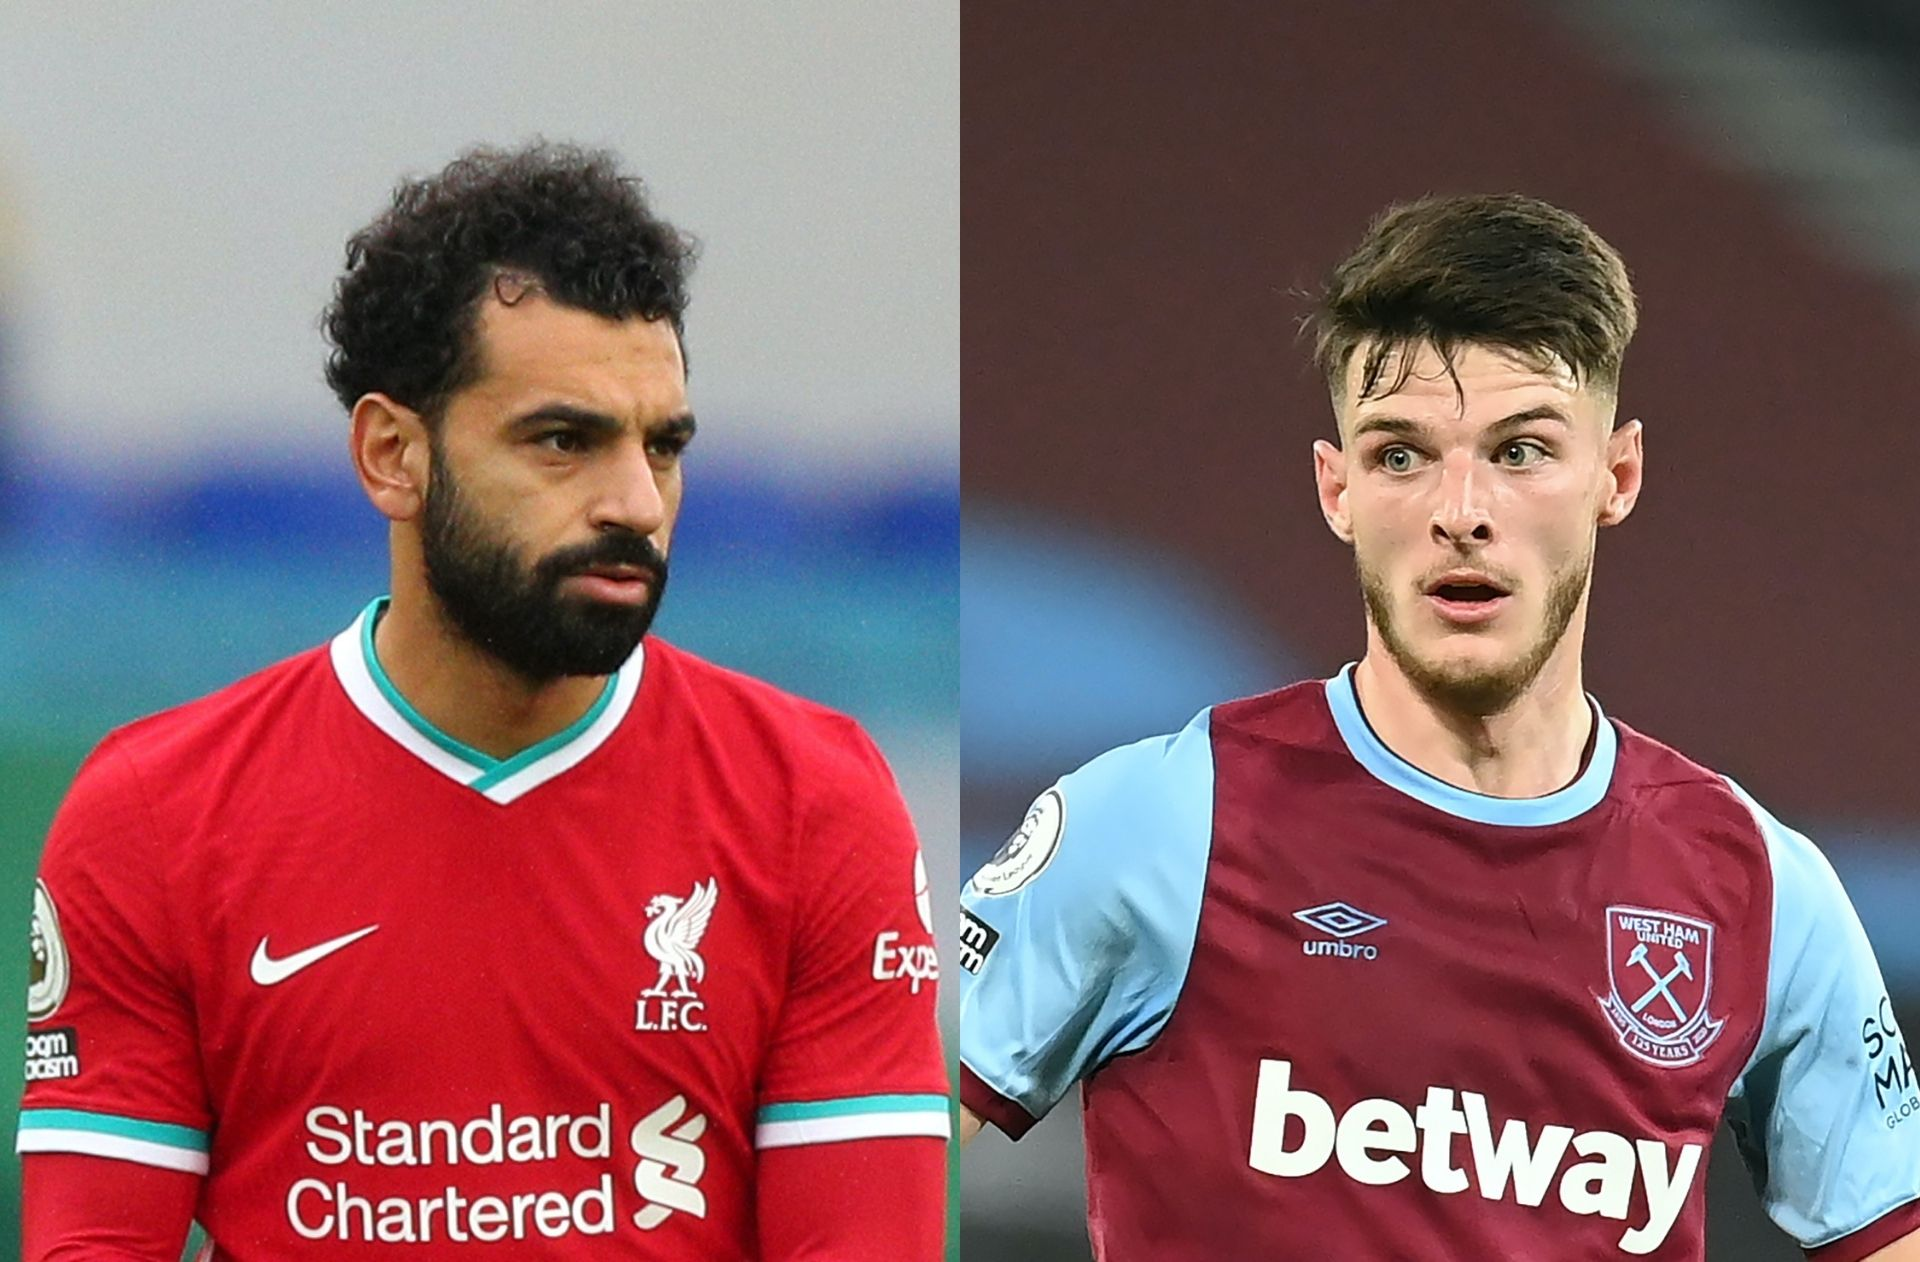 Liverpool vs west ham betting tips trading binary options successfully